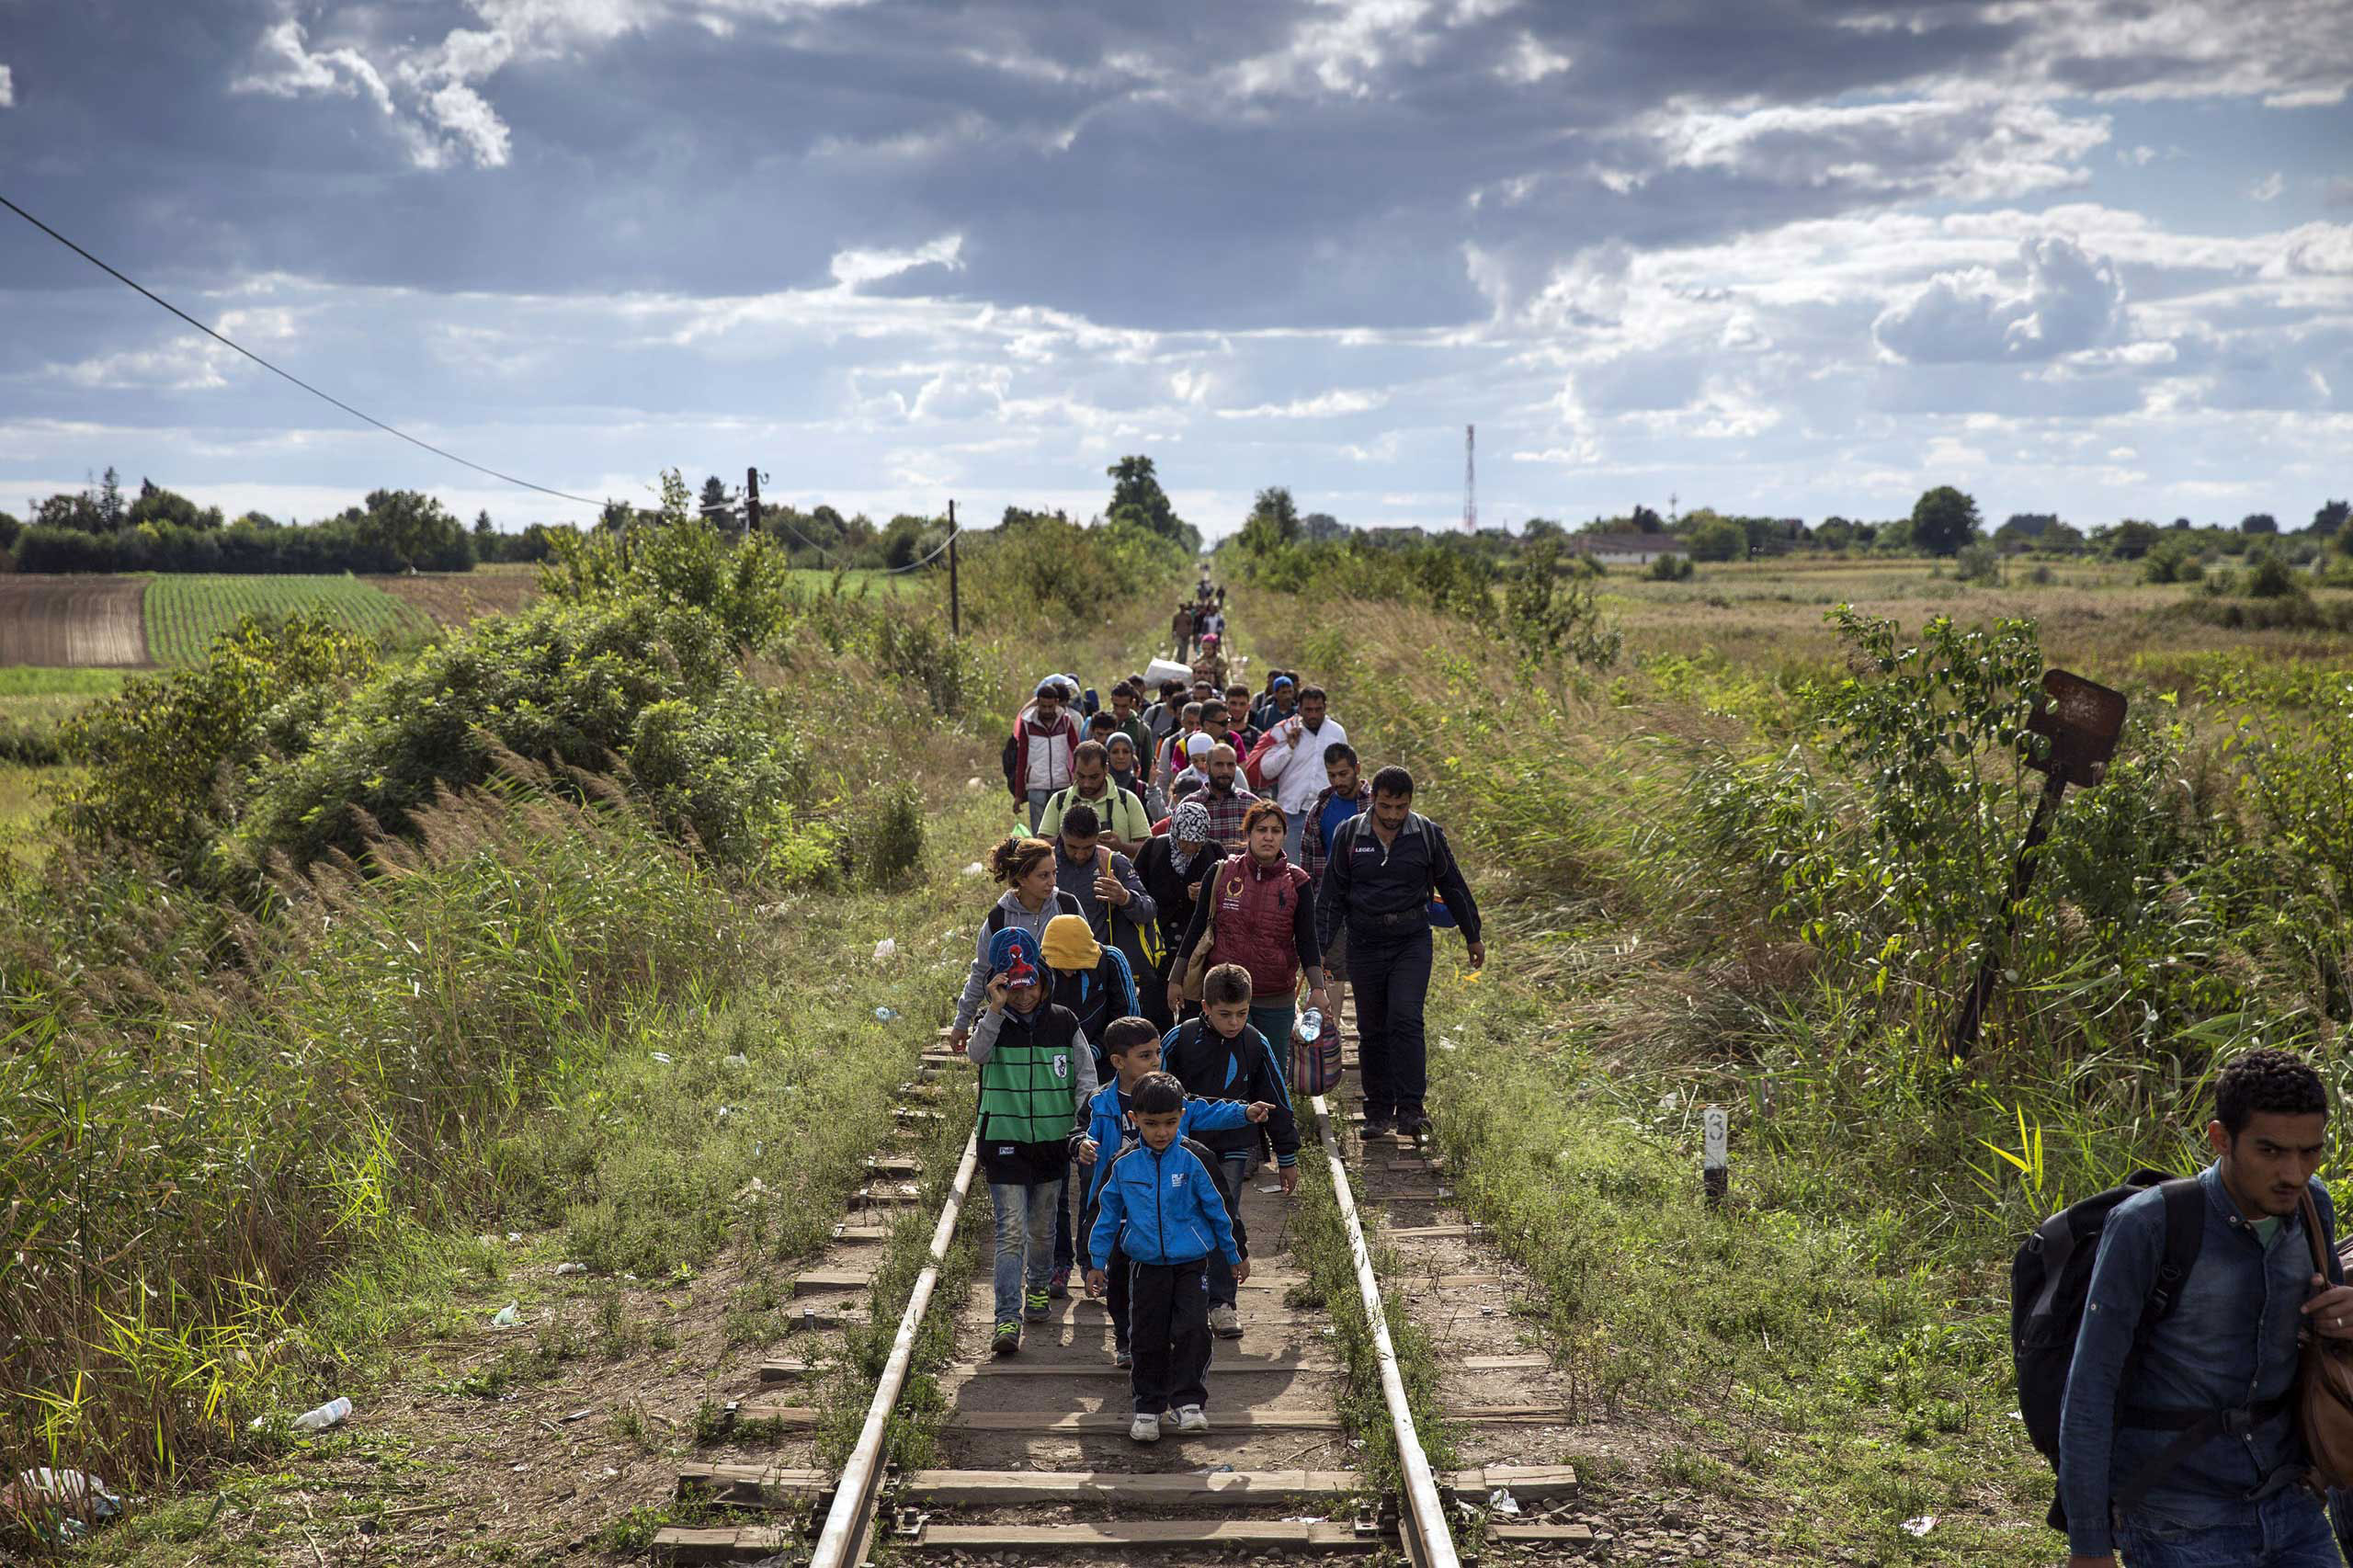 "Migrants cross into Hungary as they walk over railroad tracks at the Serbian border with Hungary. Horgas, Serbia. Sept. 7, 2015.                               Since the beginning of 2015 the number of migrants using the so-called ""Balkans route"" has exploded with migrants arriving in Greece from Turkey and then travelling on through Macedonia and Serbia before entering the EU via Hungary. The number of people leaving their homes in war torn countries such as Syria, marks the largest migration of people since World War II."